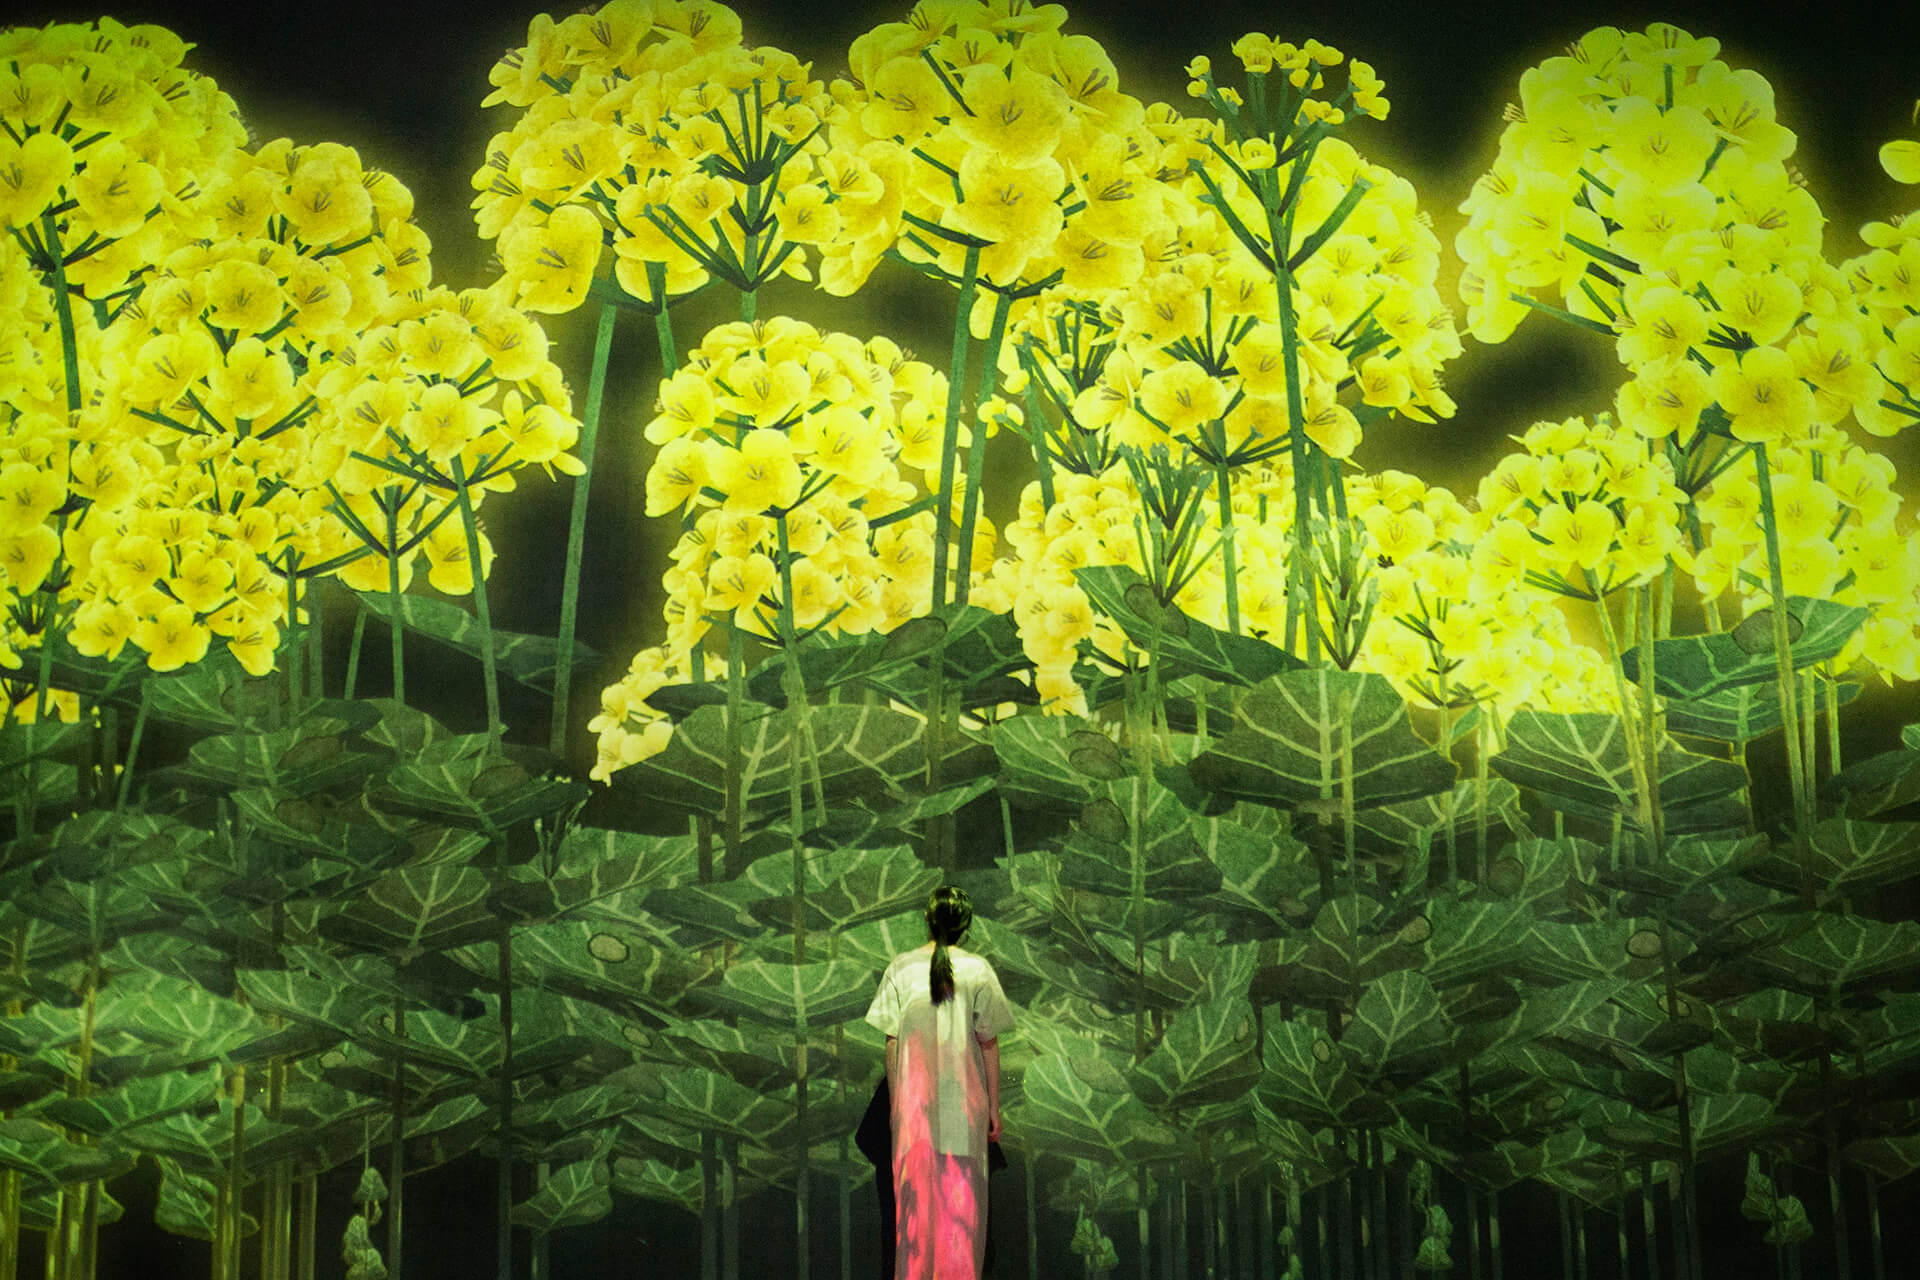 A generative art installation by teamLab titled 'Proliferating Immense Life - A Whole Year per Year' | Future World by teamLab | STIRworld